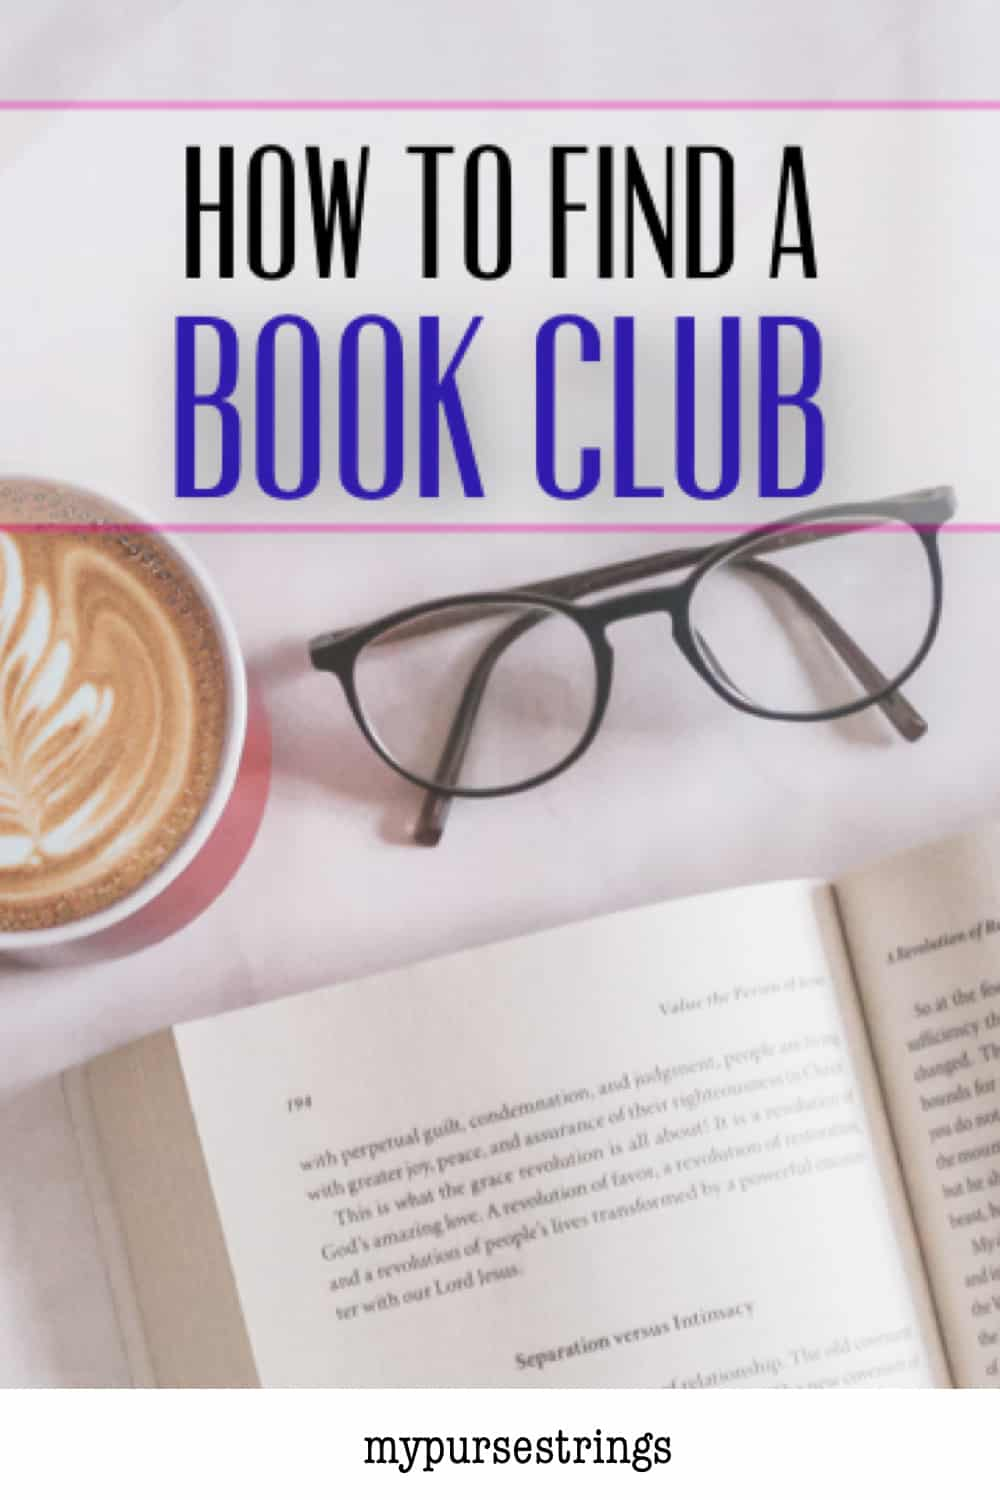 How to Find a Book Club